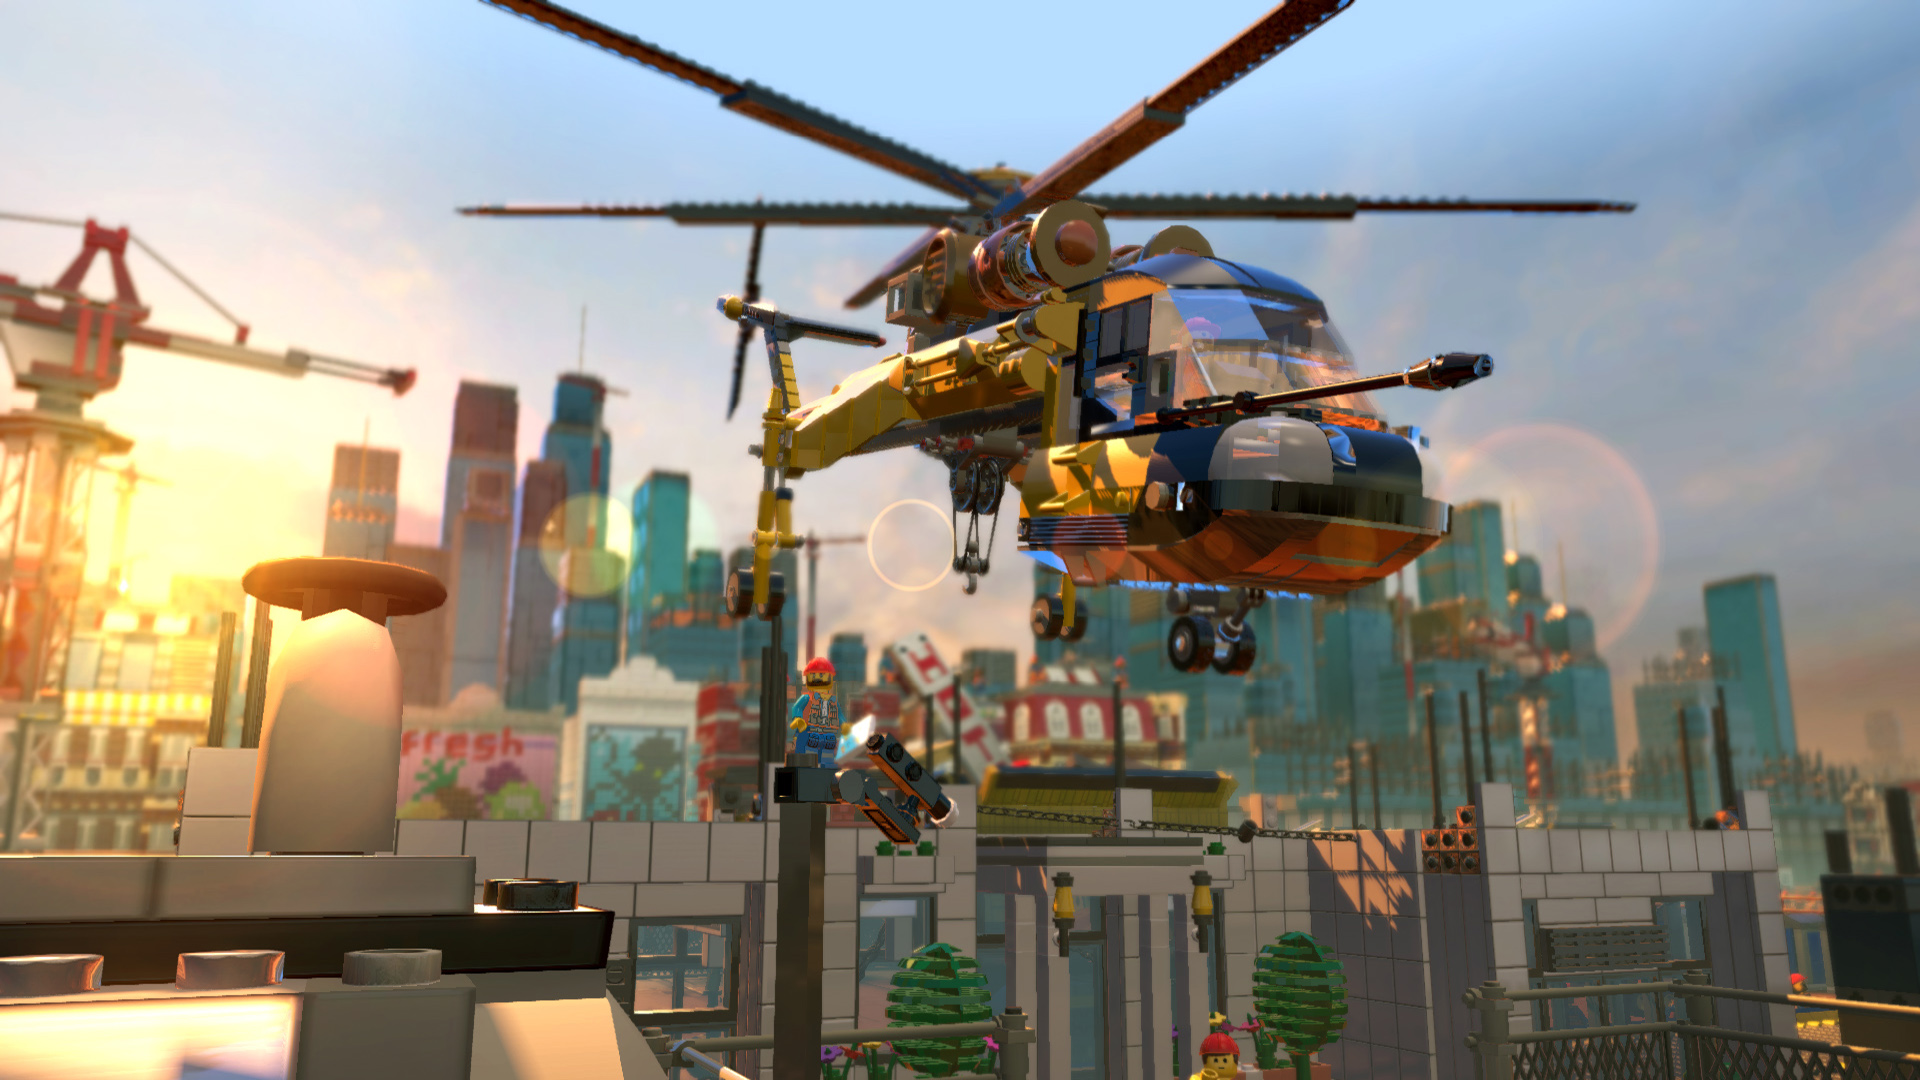 The LEGO Movie - Videogame screenshot